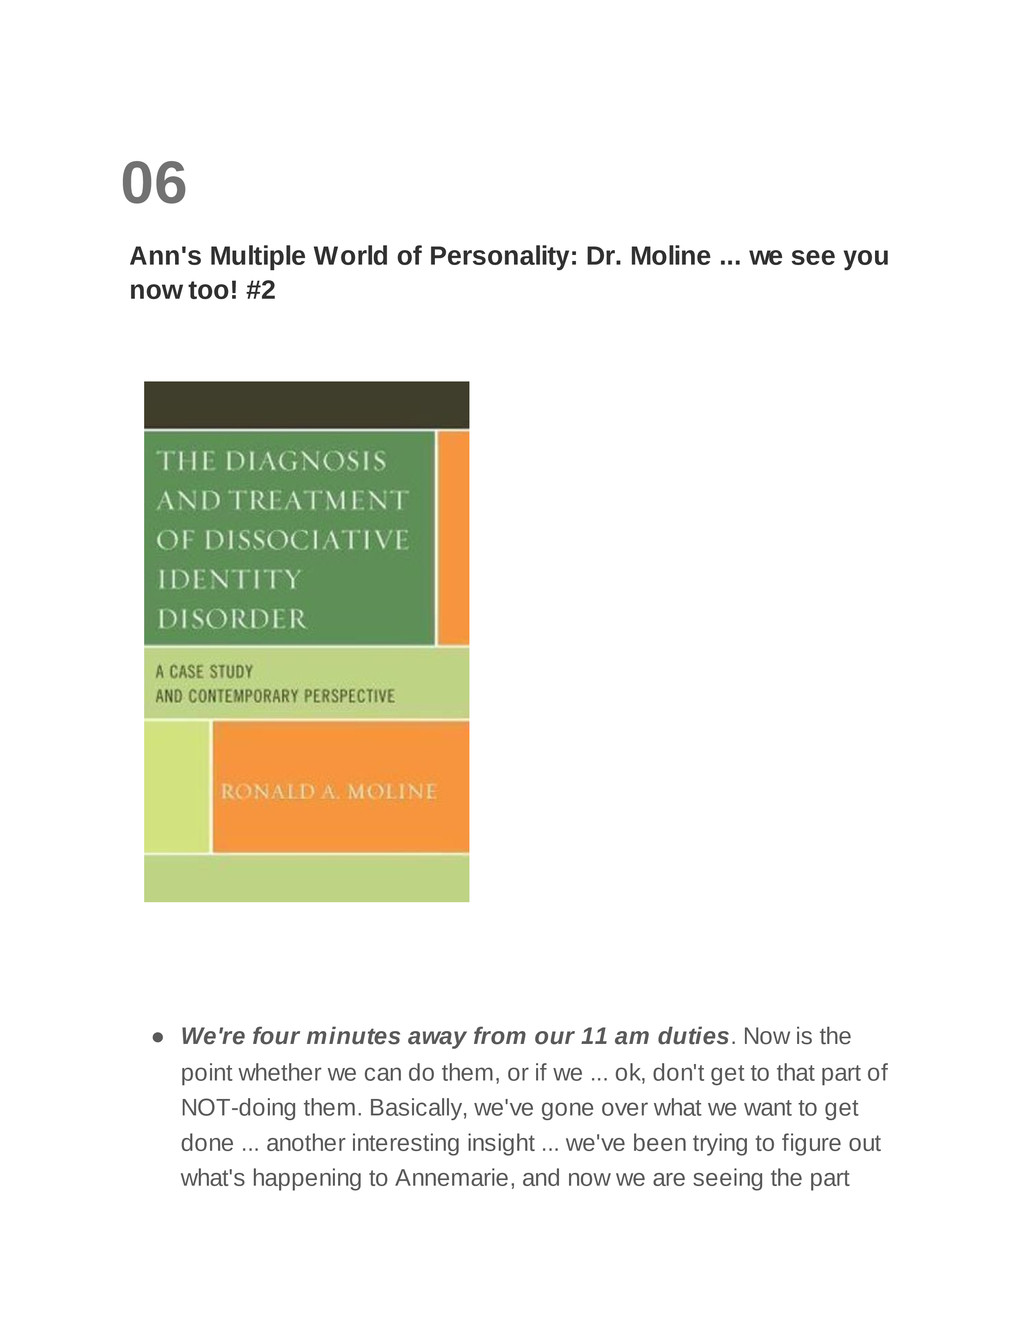 06 Ann's Multiple World of Personality: Dr. Mol...